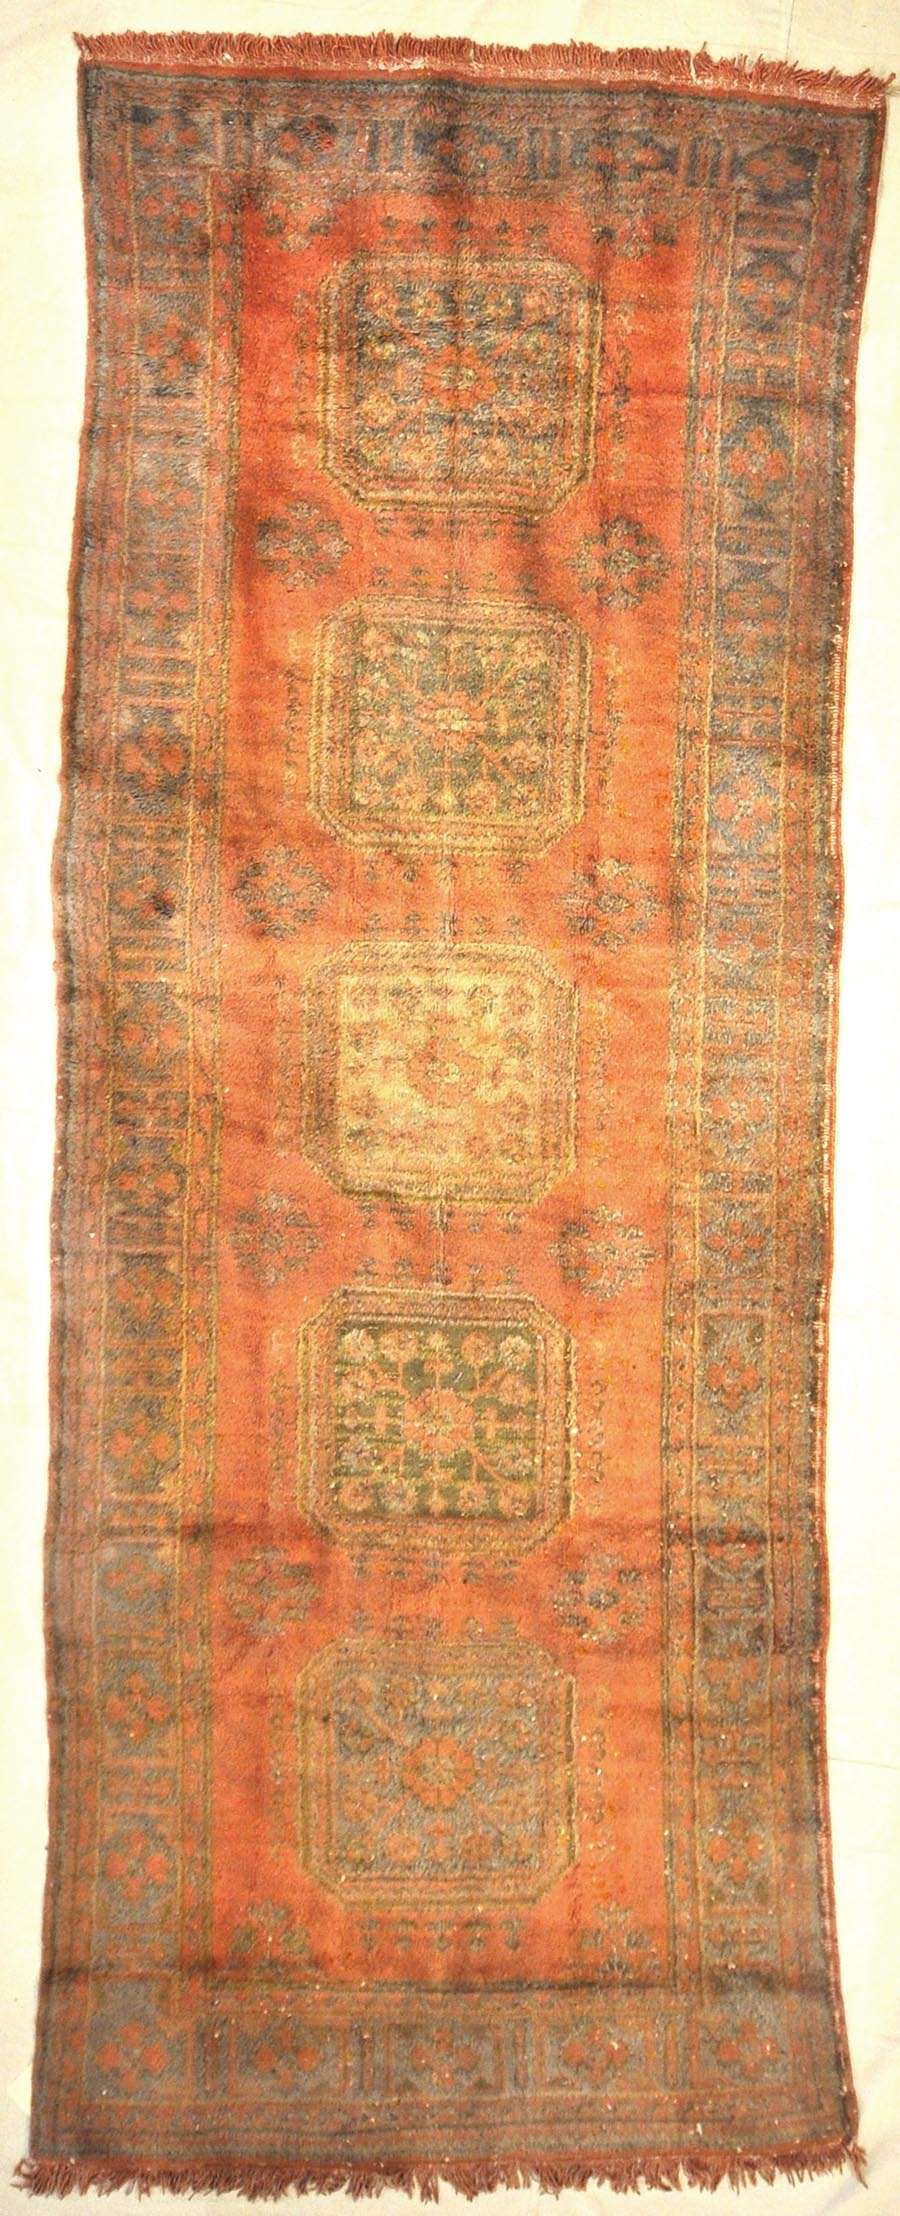 Antique Turkish Oushak Runner | Rugs and More | Santa Barbara Design 32799